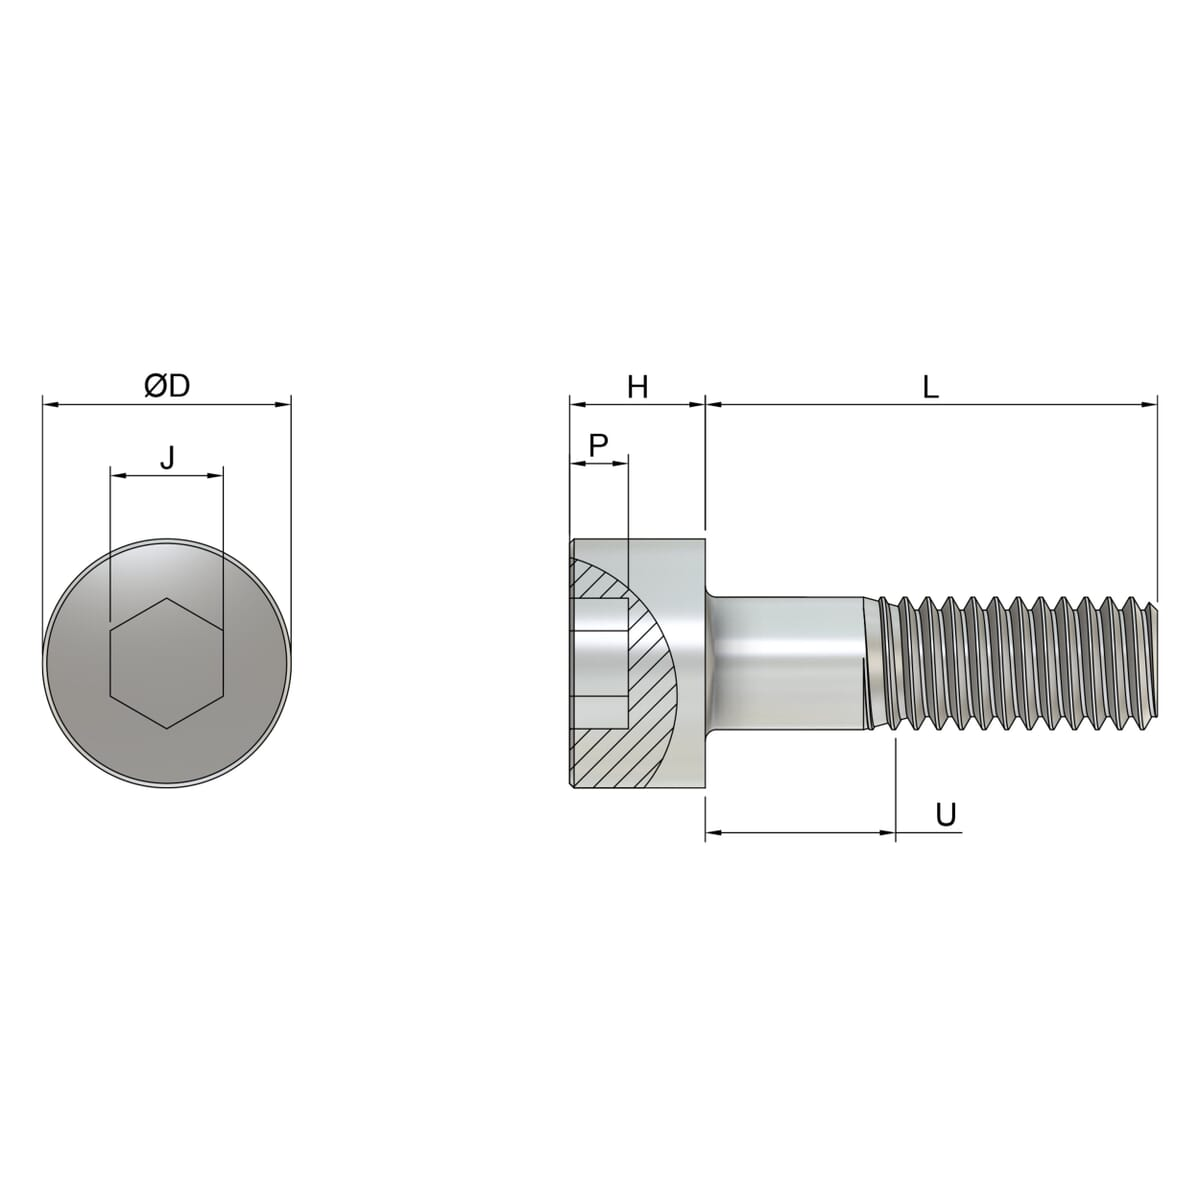 M6 x 70mm Cap Head Screws (DIN 912) - Marine Stainless Steel (A4) Drawing